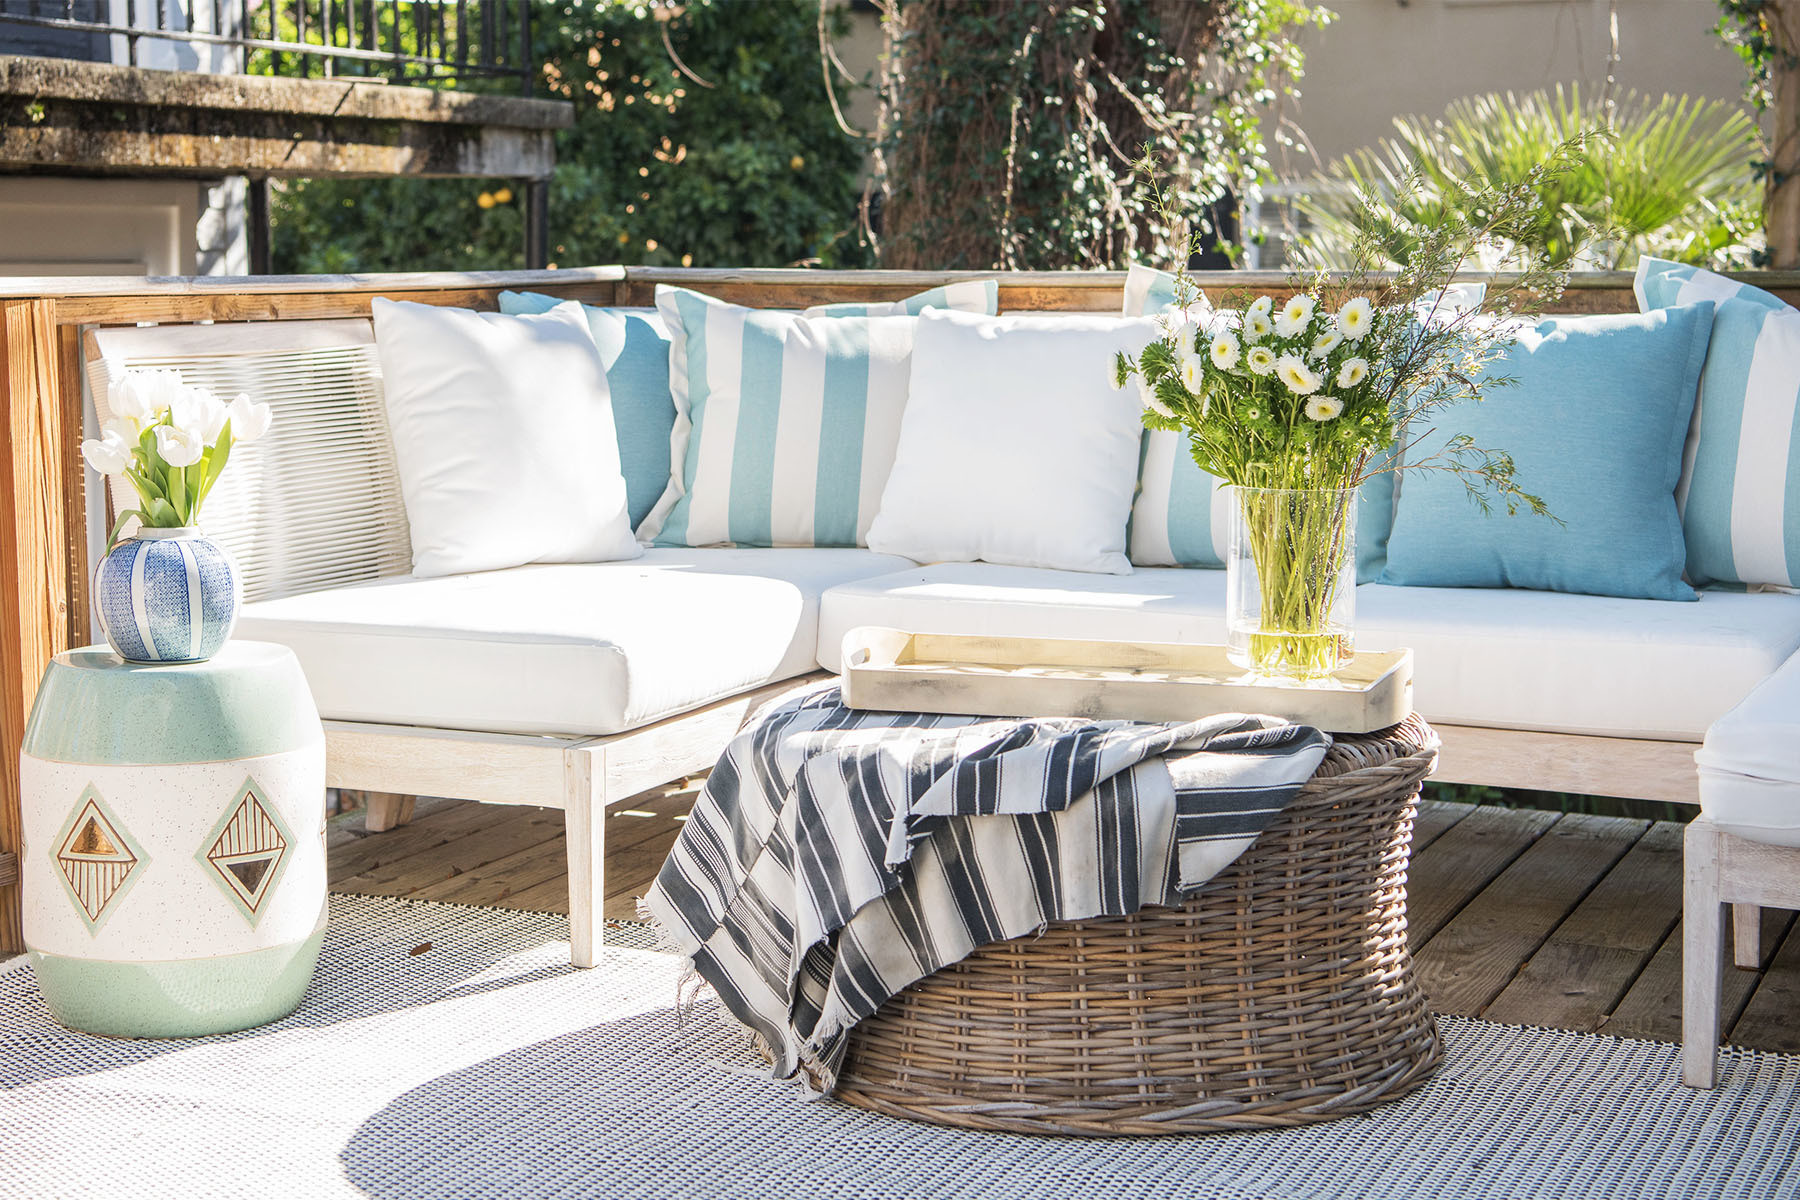 """In the past year, we've been working on our outdoor space. It's really an extension of our family room, and we love spending time out there especially when we have company over."" Safavieh Patio Furniture 